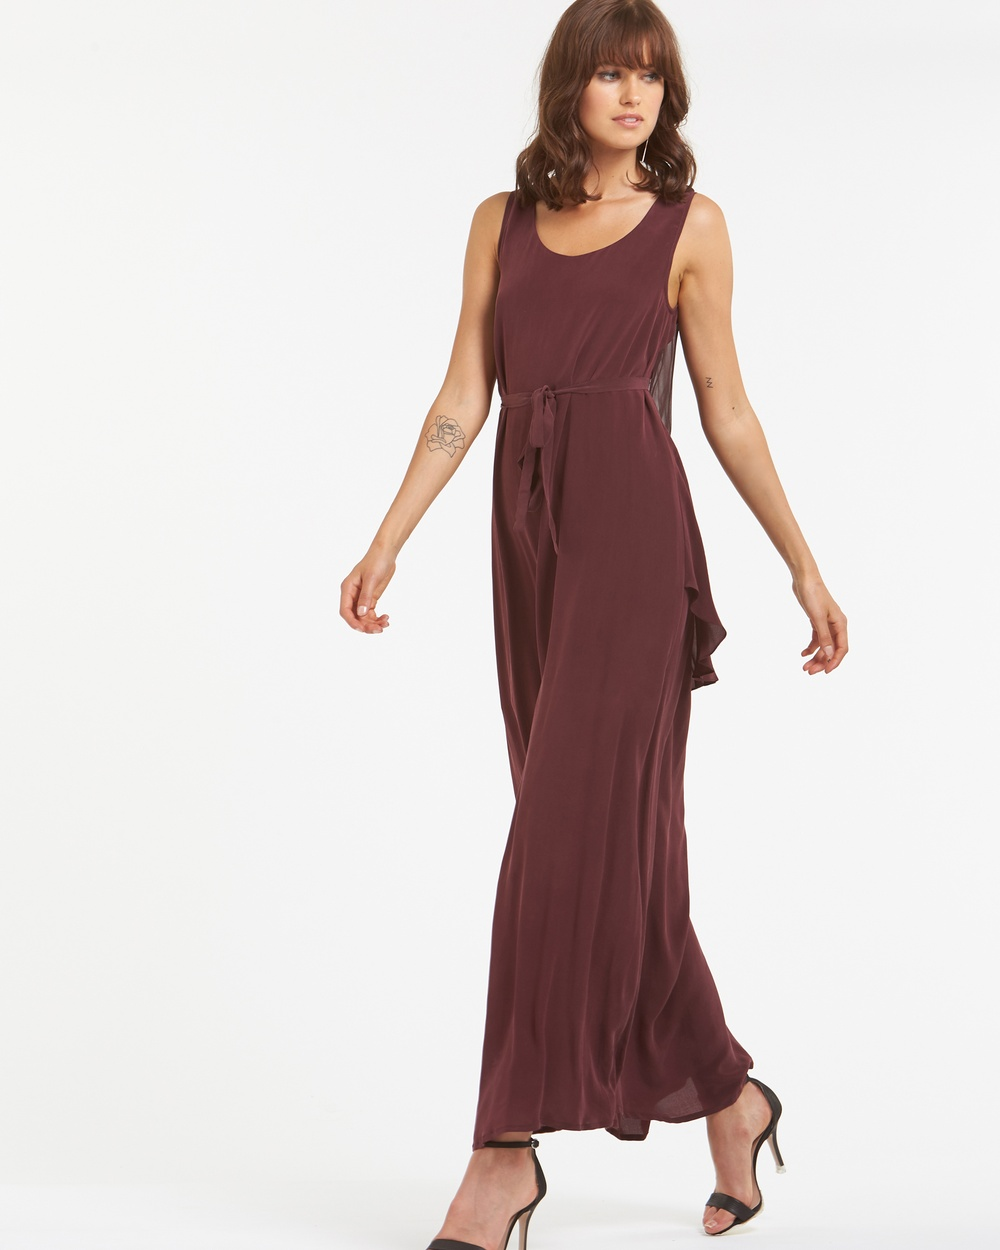 Amelius Sway Silk Maxi Bridesmaid Dresses Burgundy Sway Silk Maxi